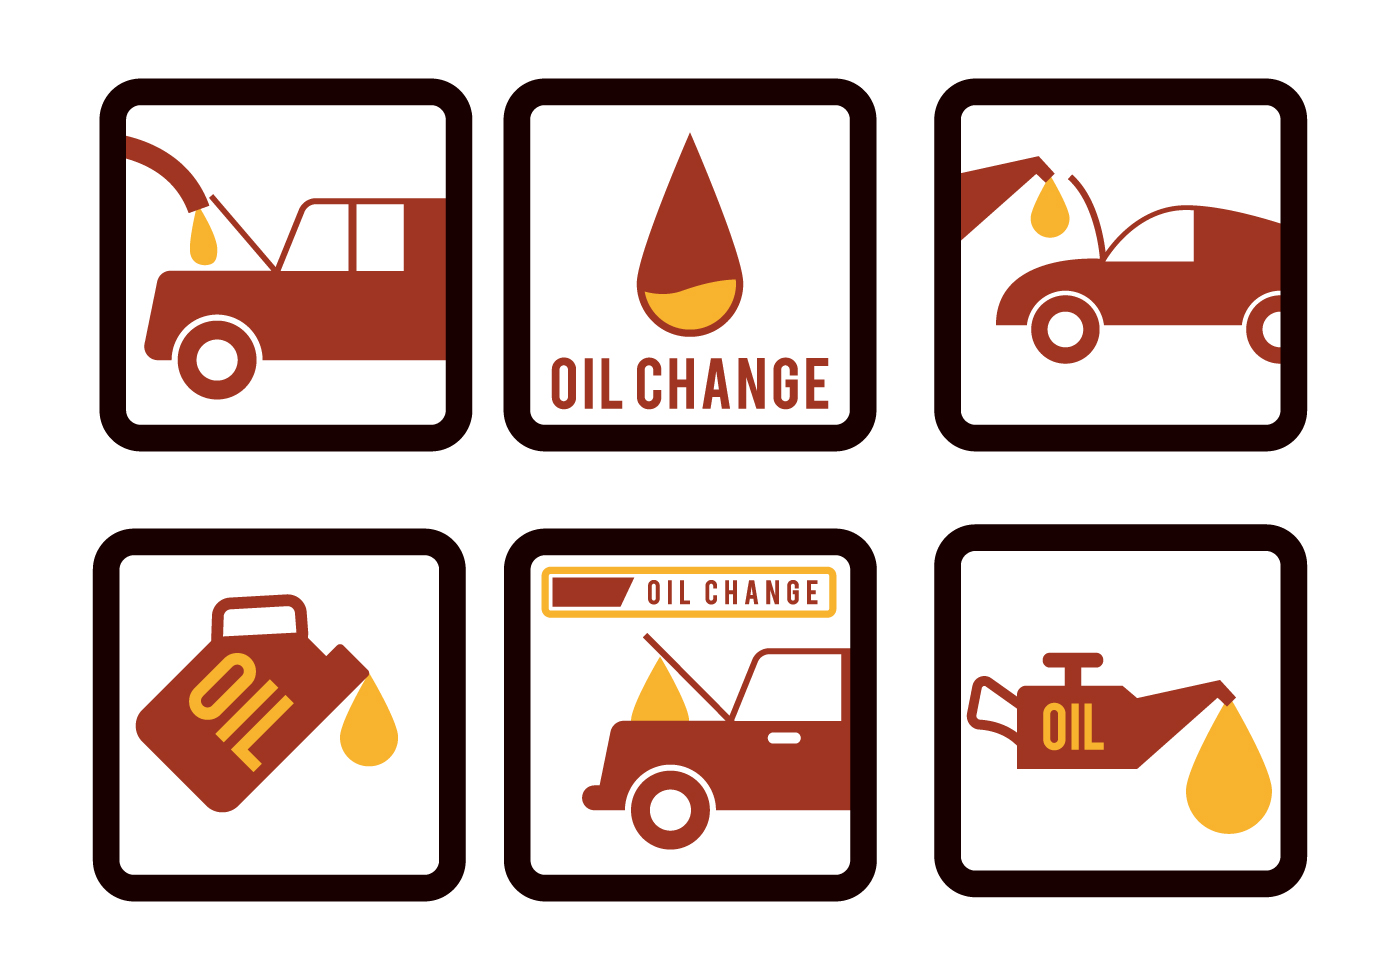 Oil Change Symbol | www.pixshark.com - Images Galleries ...